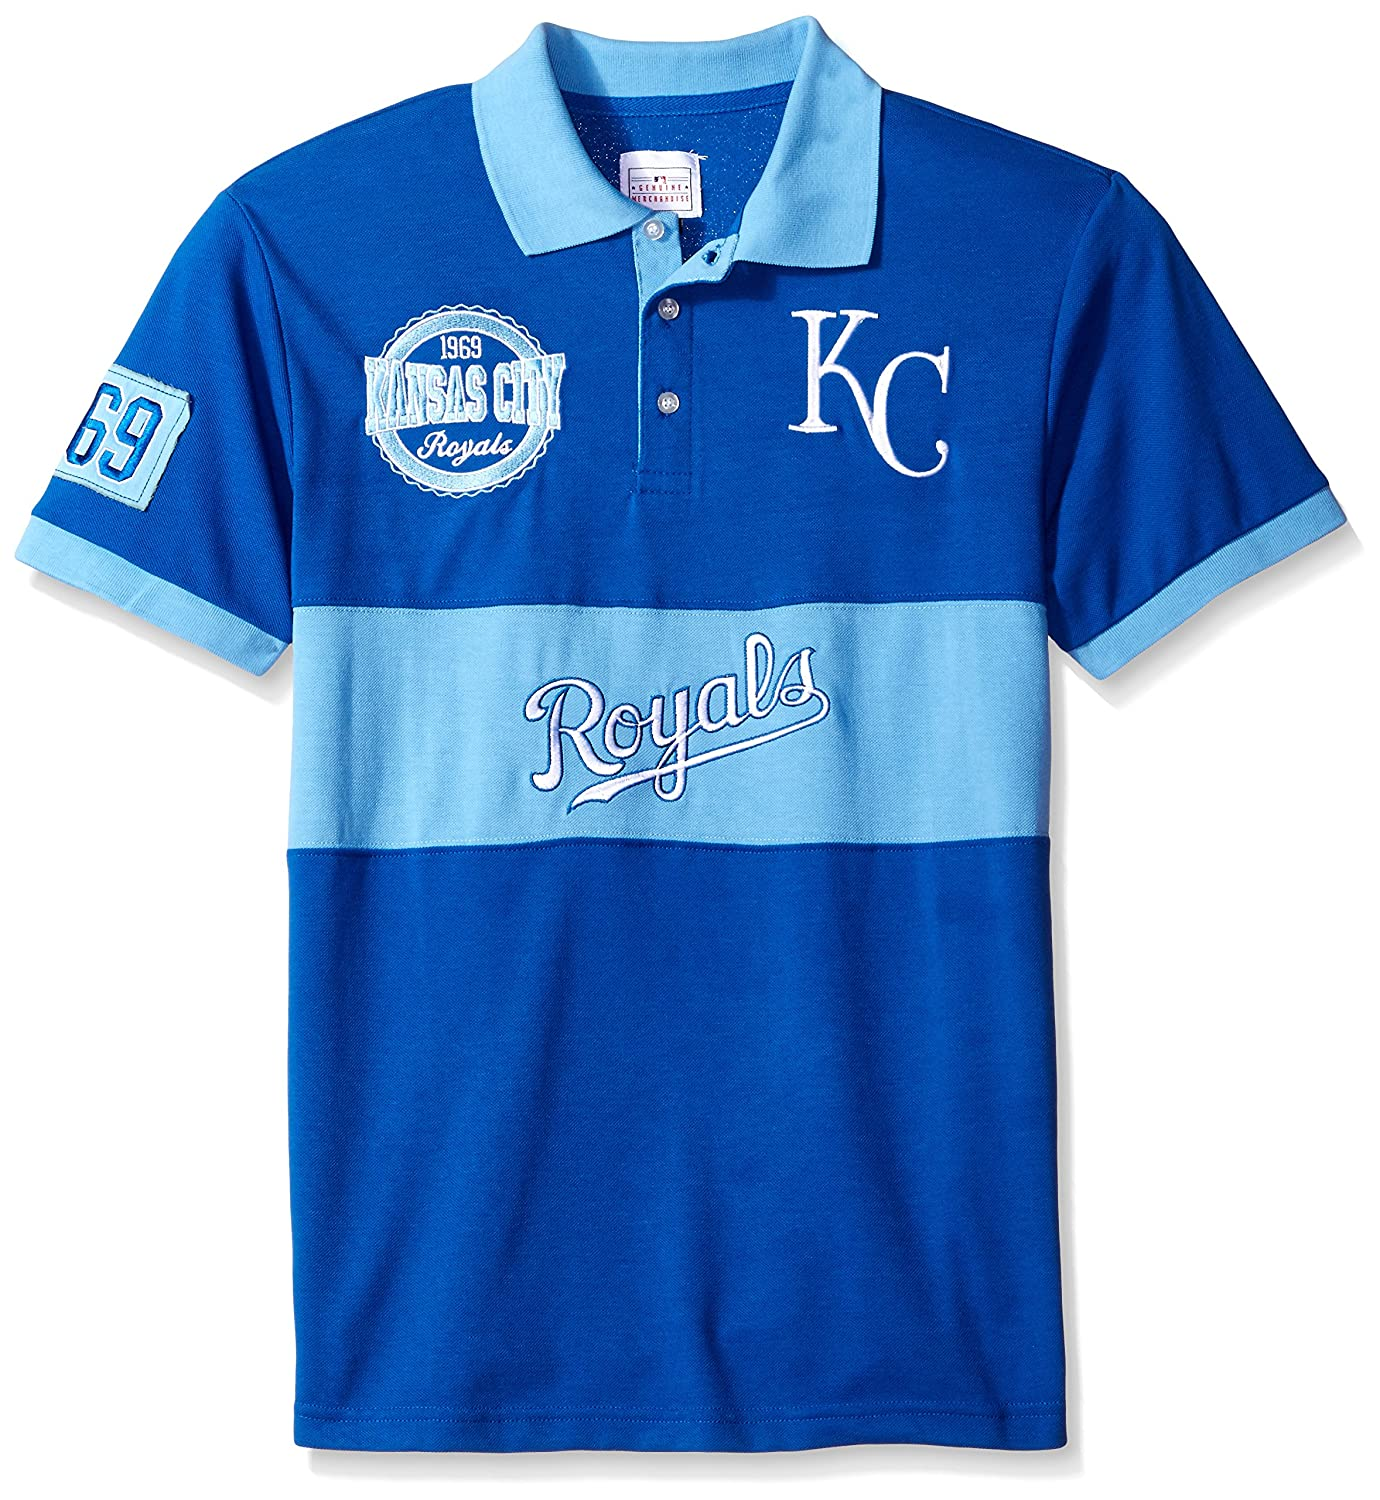 人気アイテム (Kansas Polo City MLB Royals, Medium) - MLB B01CO7UO5W Wordmark Cotton Polo B01CO7UO5W, ウィッチーズキッチン:a5c8bbcd --- a0267596.xsph.ru